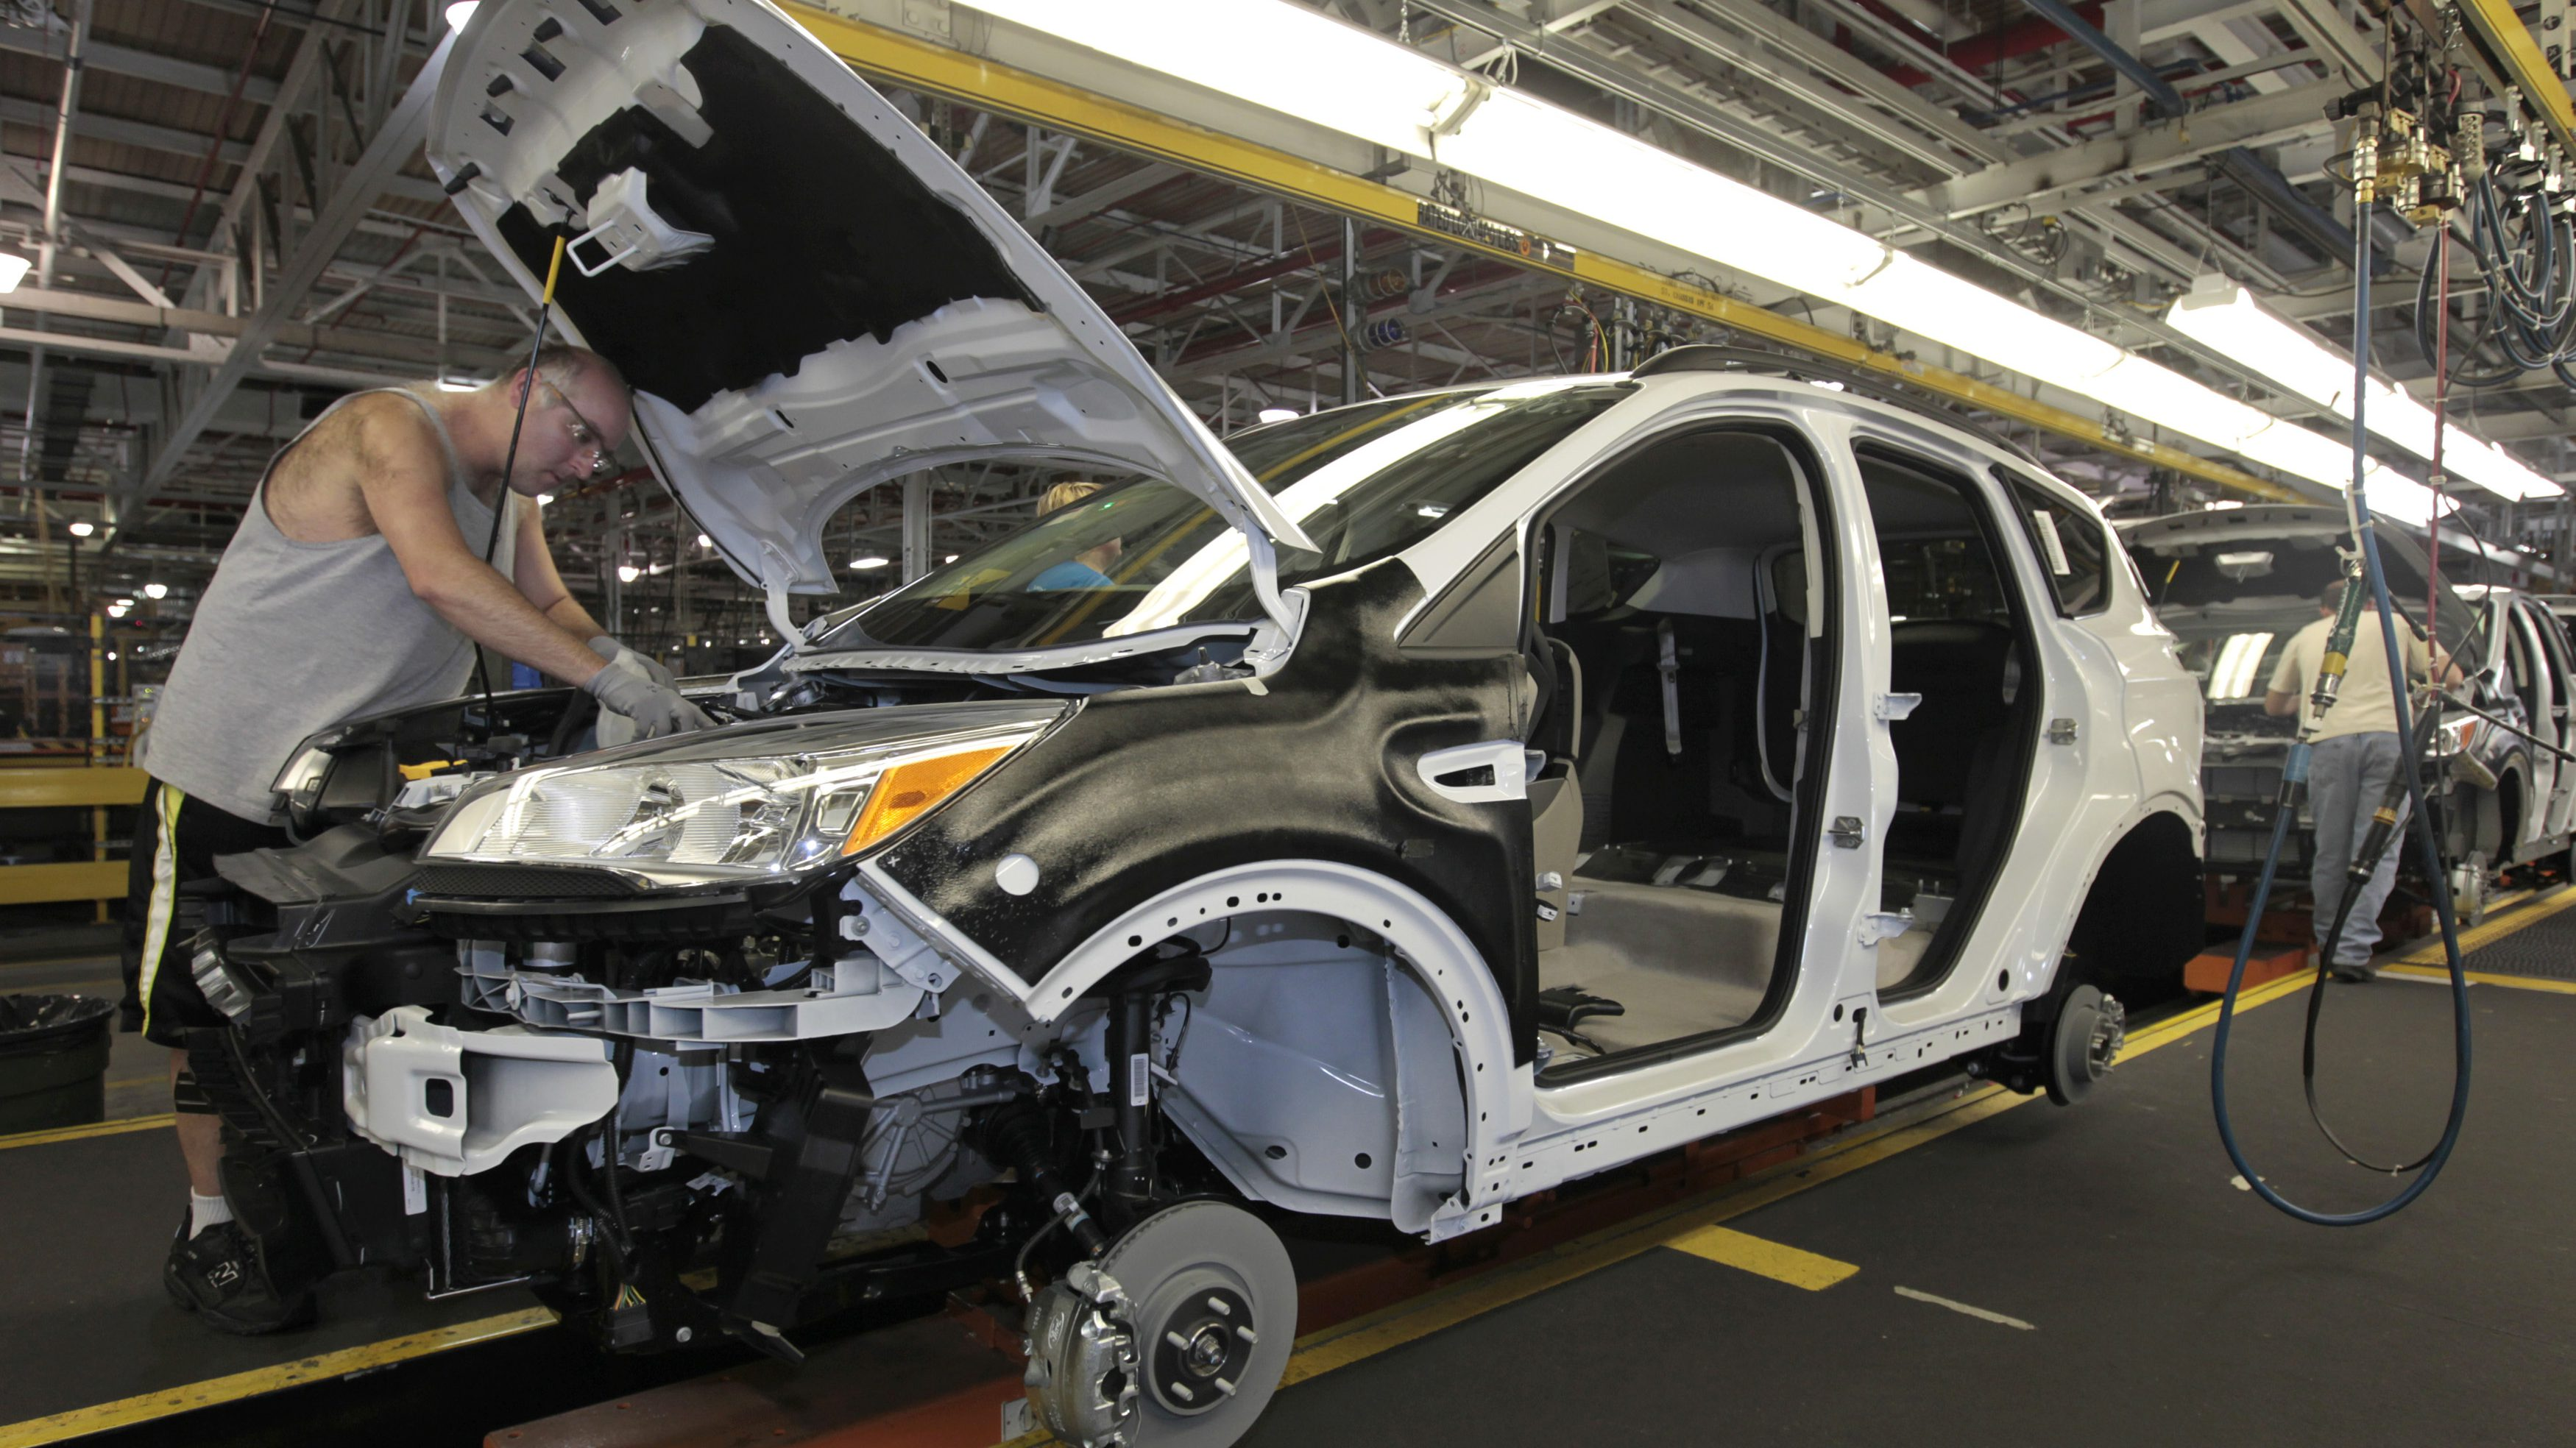 Louisville Assembly Plant employees work to assemble the new 2013 Ford Escape on the production line in Louisville, Kentucky, June 13, 2012.  REUTERS/John Sommers II/File Photo - TM3EC671BX401